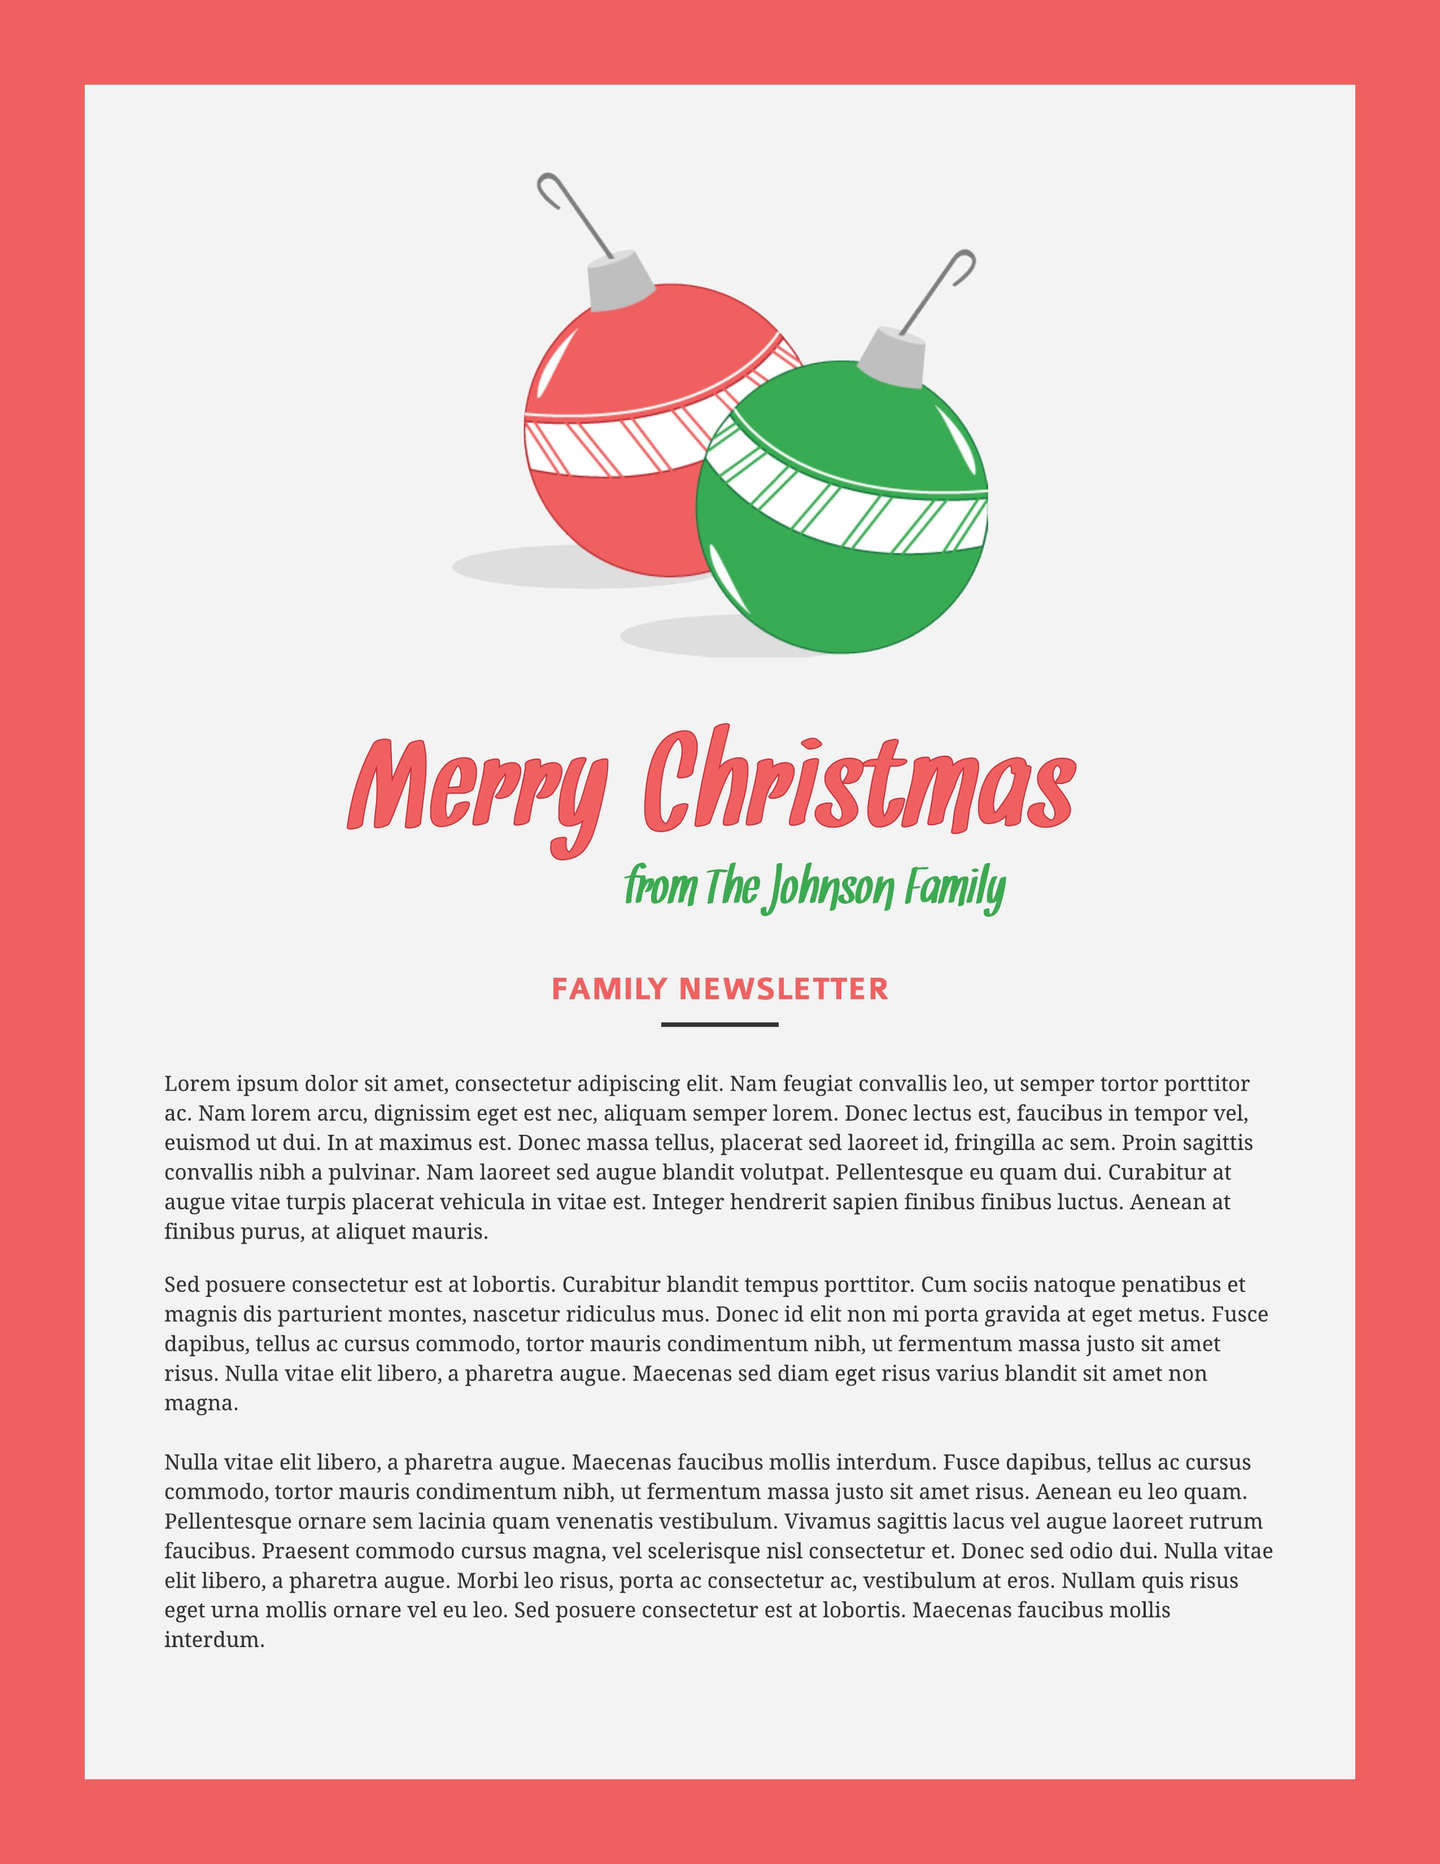 Free newsletter templates email newsletter examples holiday christmas newsletter template spiritdancerdesigns Images